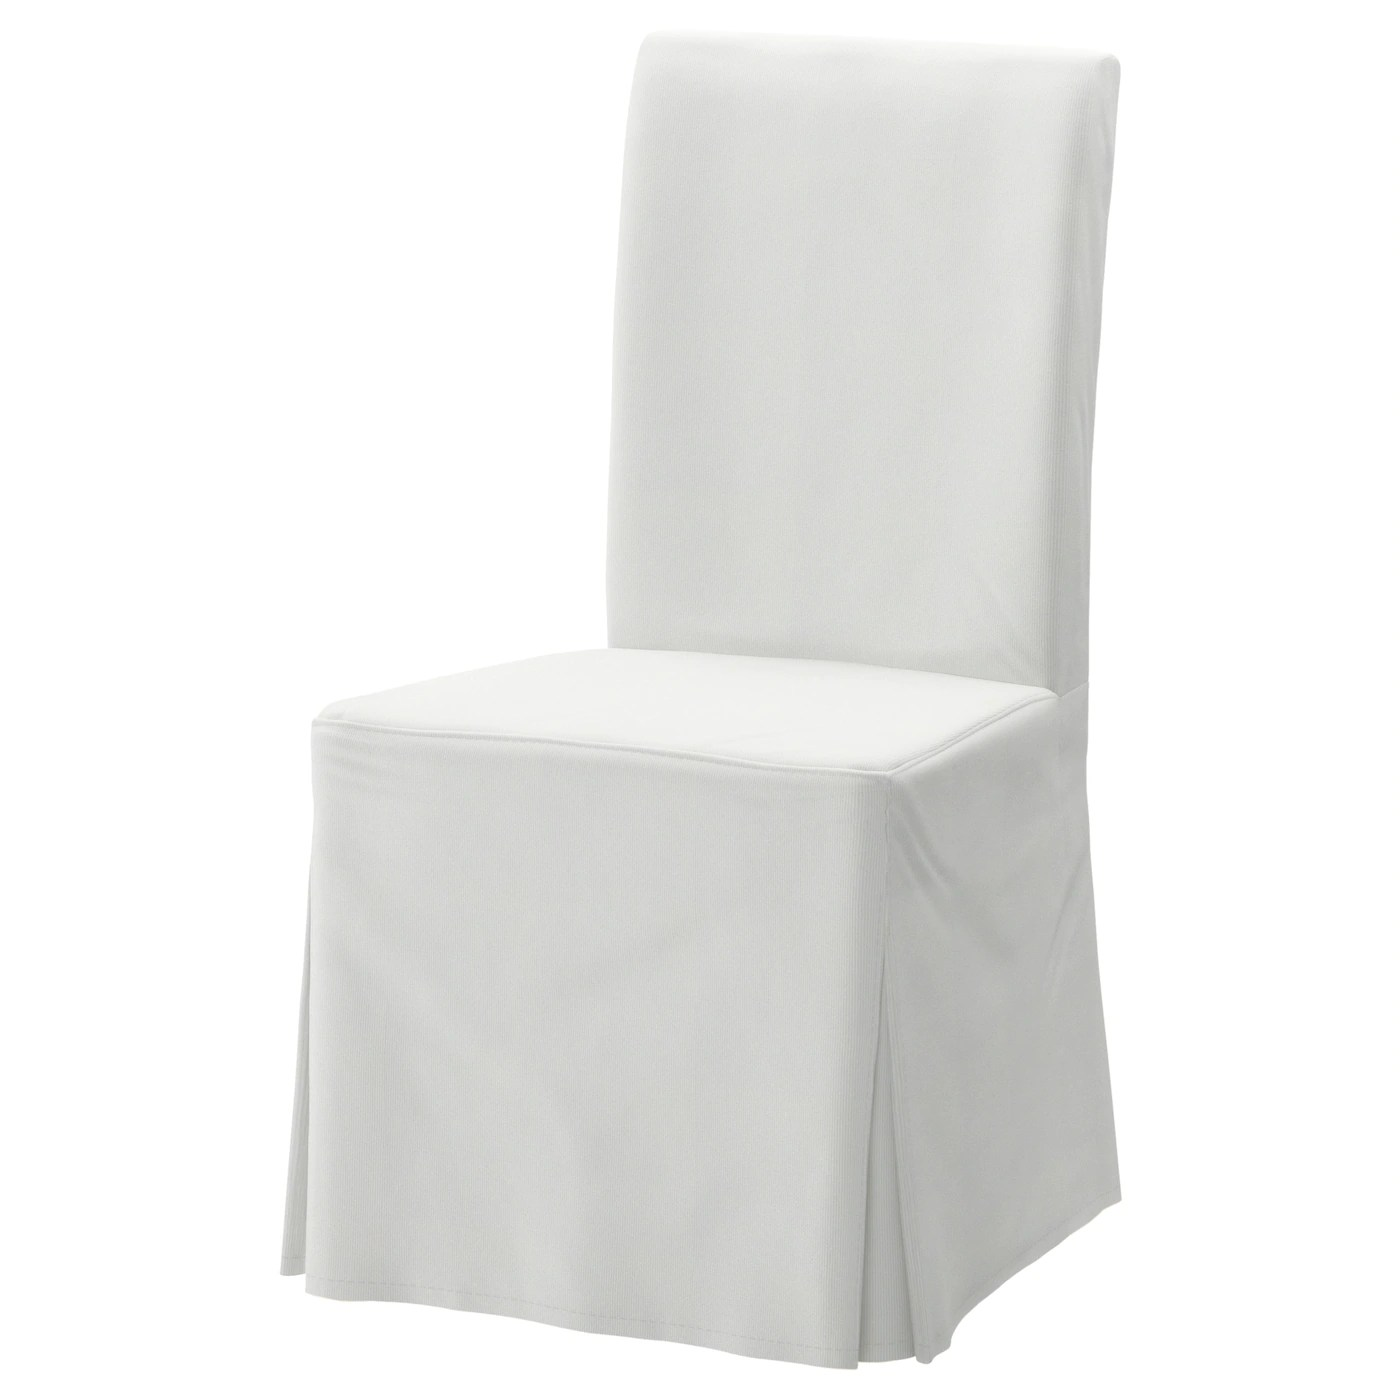 chair covers for dining chairs vintage accent ikea dublin ireland